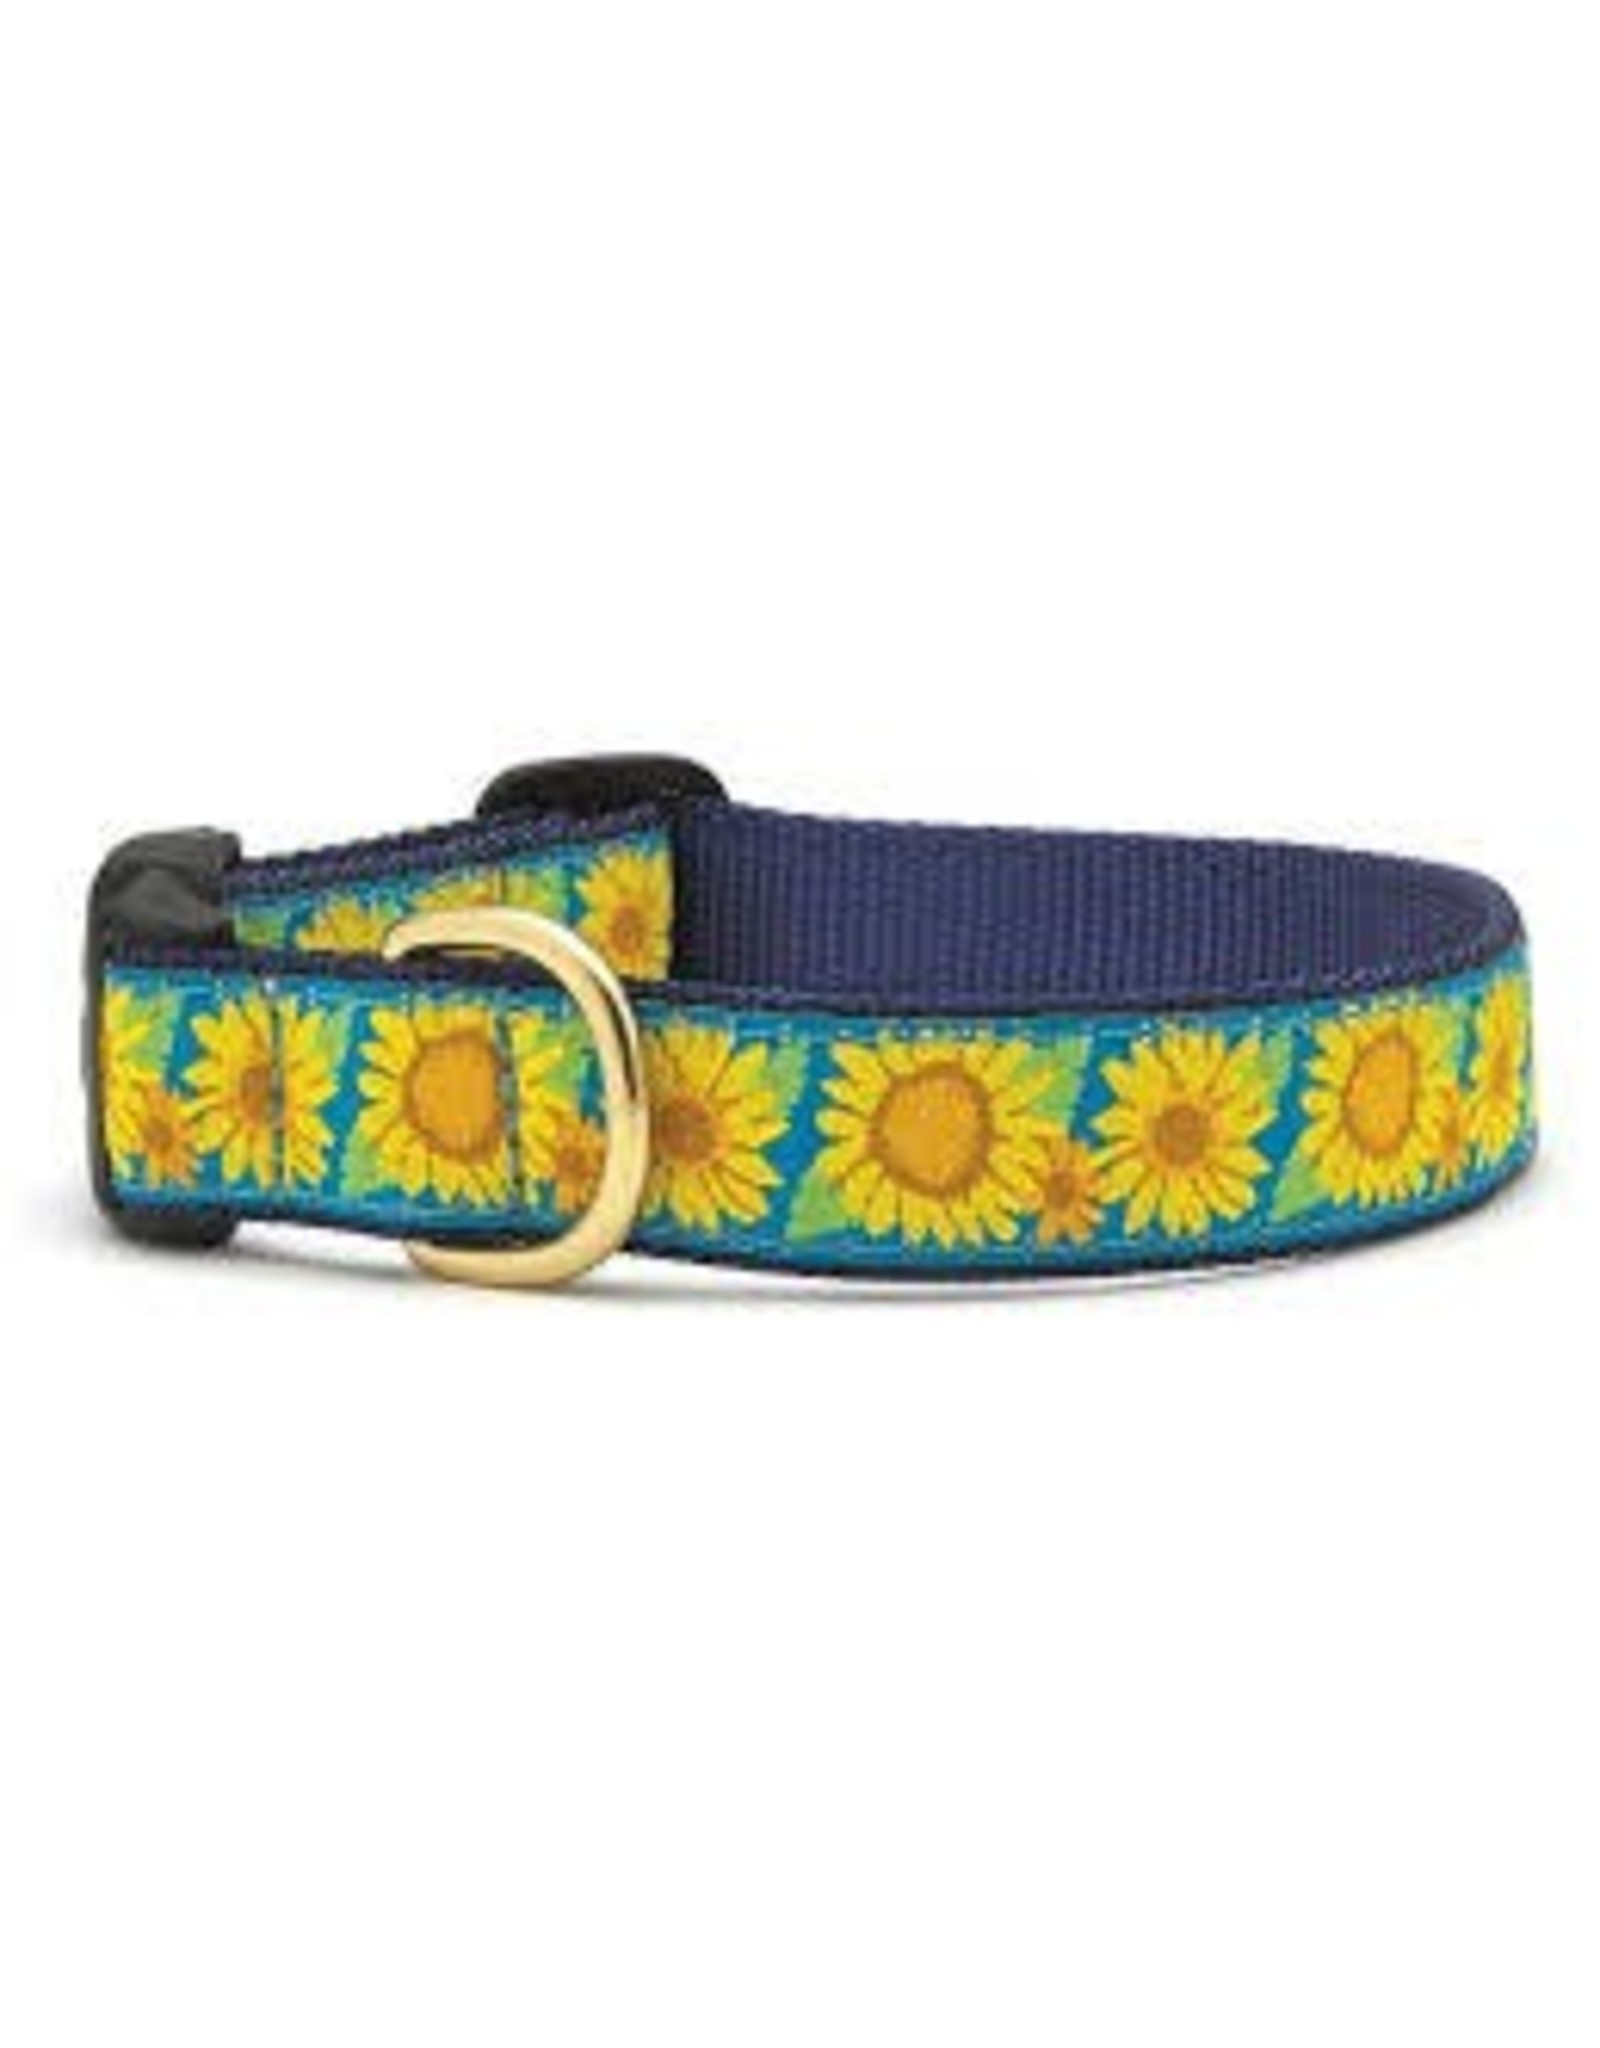 UP COUNTRY UP COUNTRY BRIGHT SUNFLOWER DOG COLLAR XL